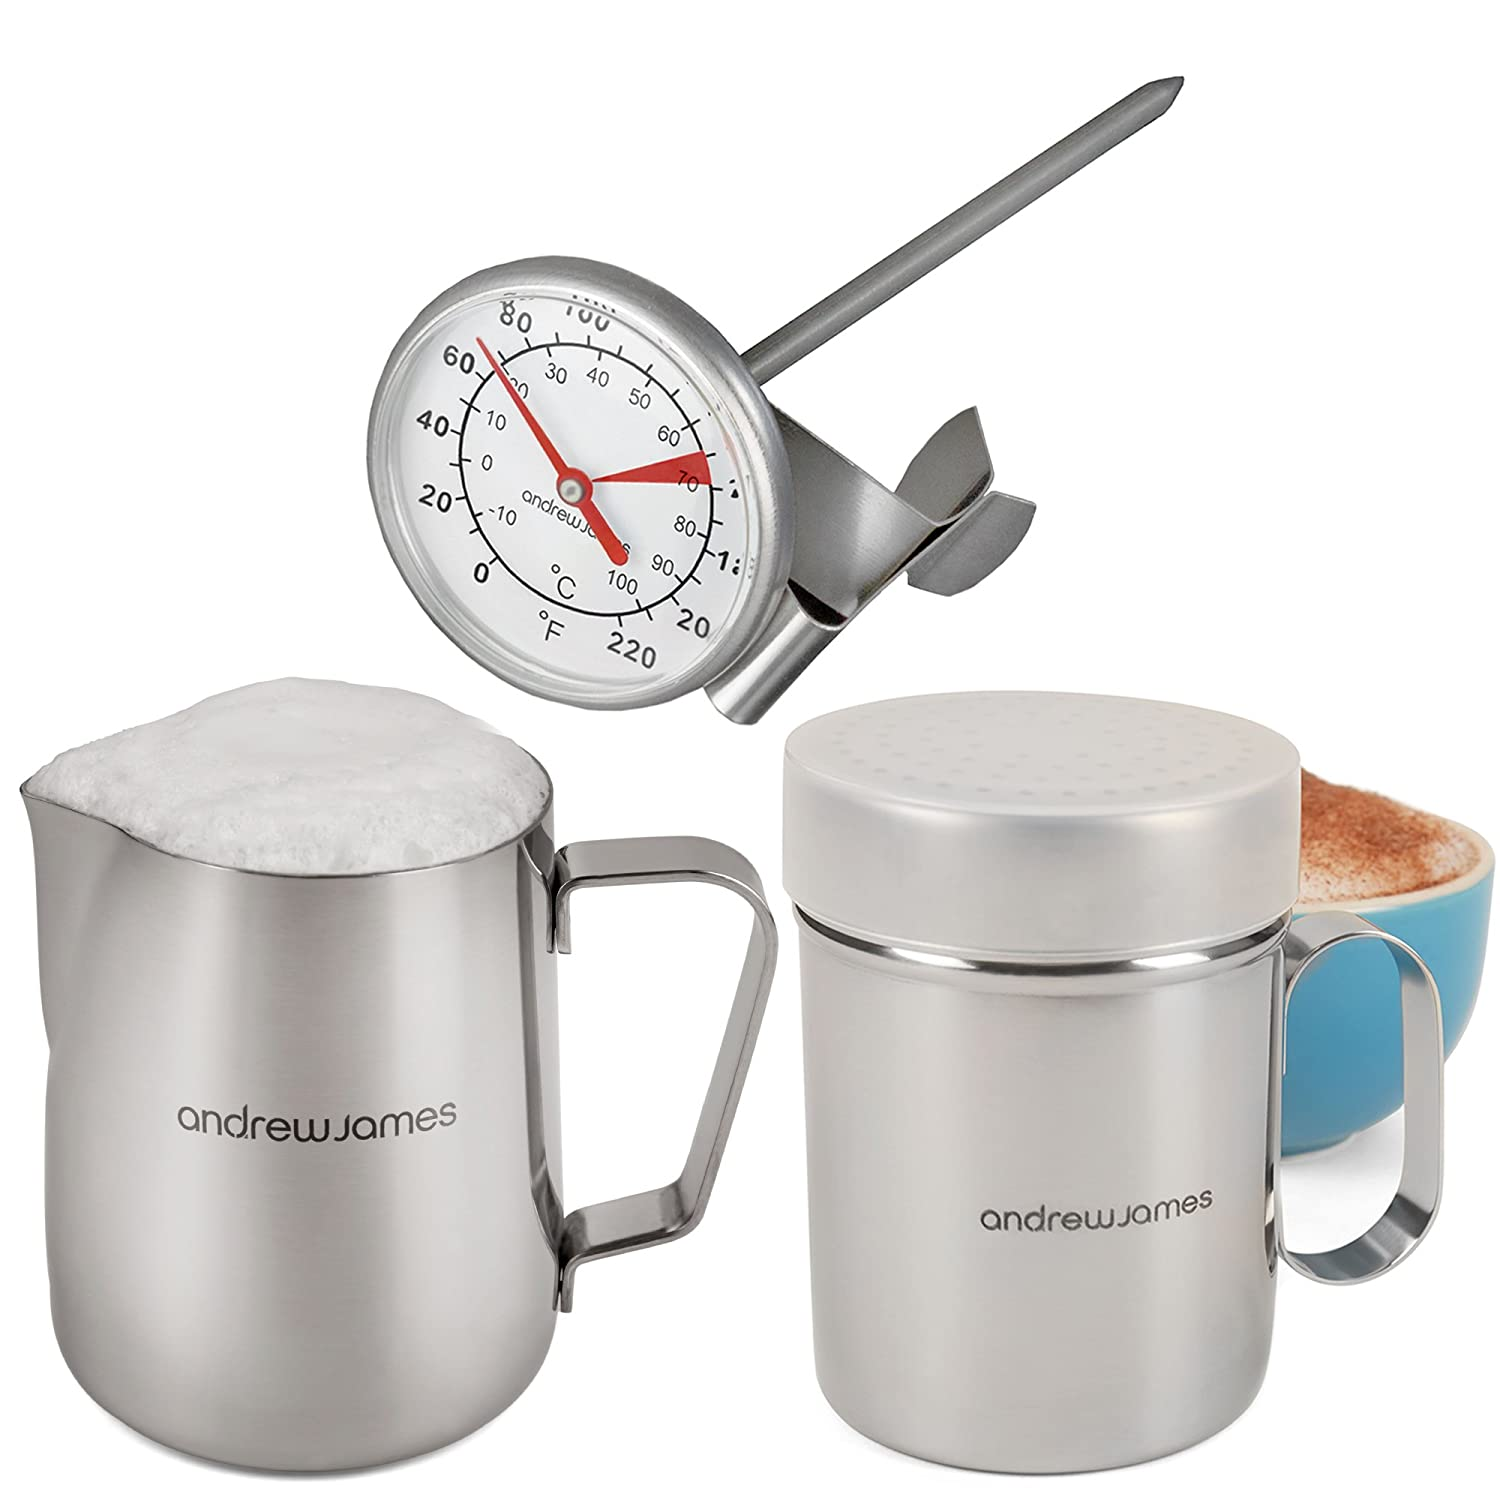 Andrew James Stainless Steel Barista Style Coffee Making Set